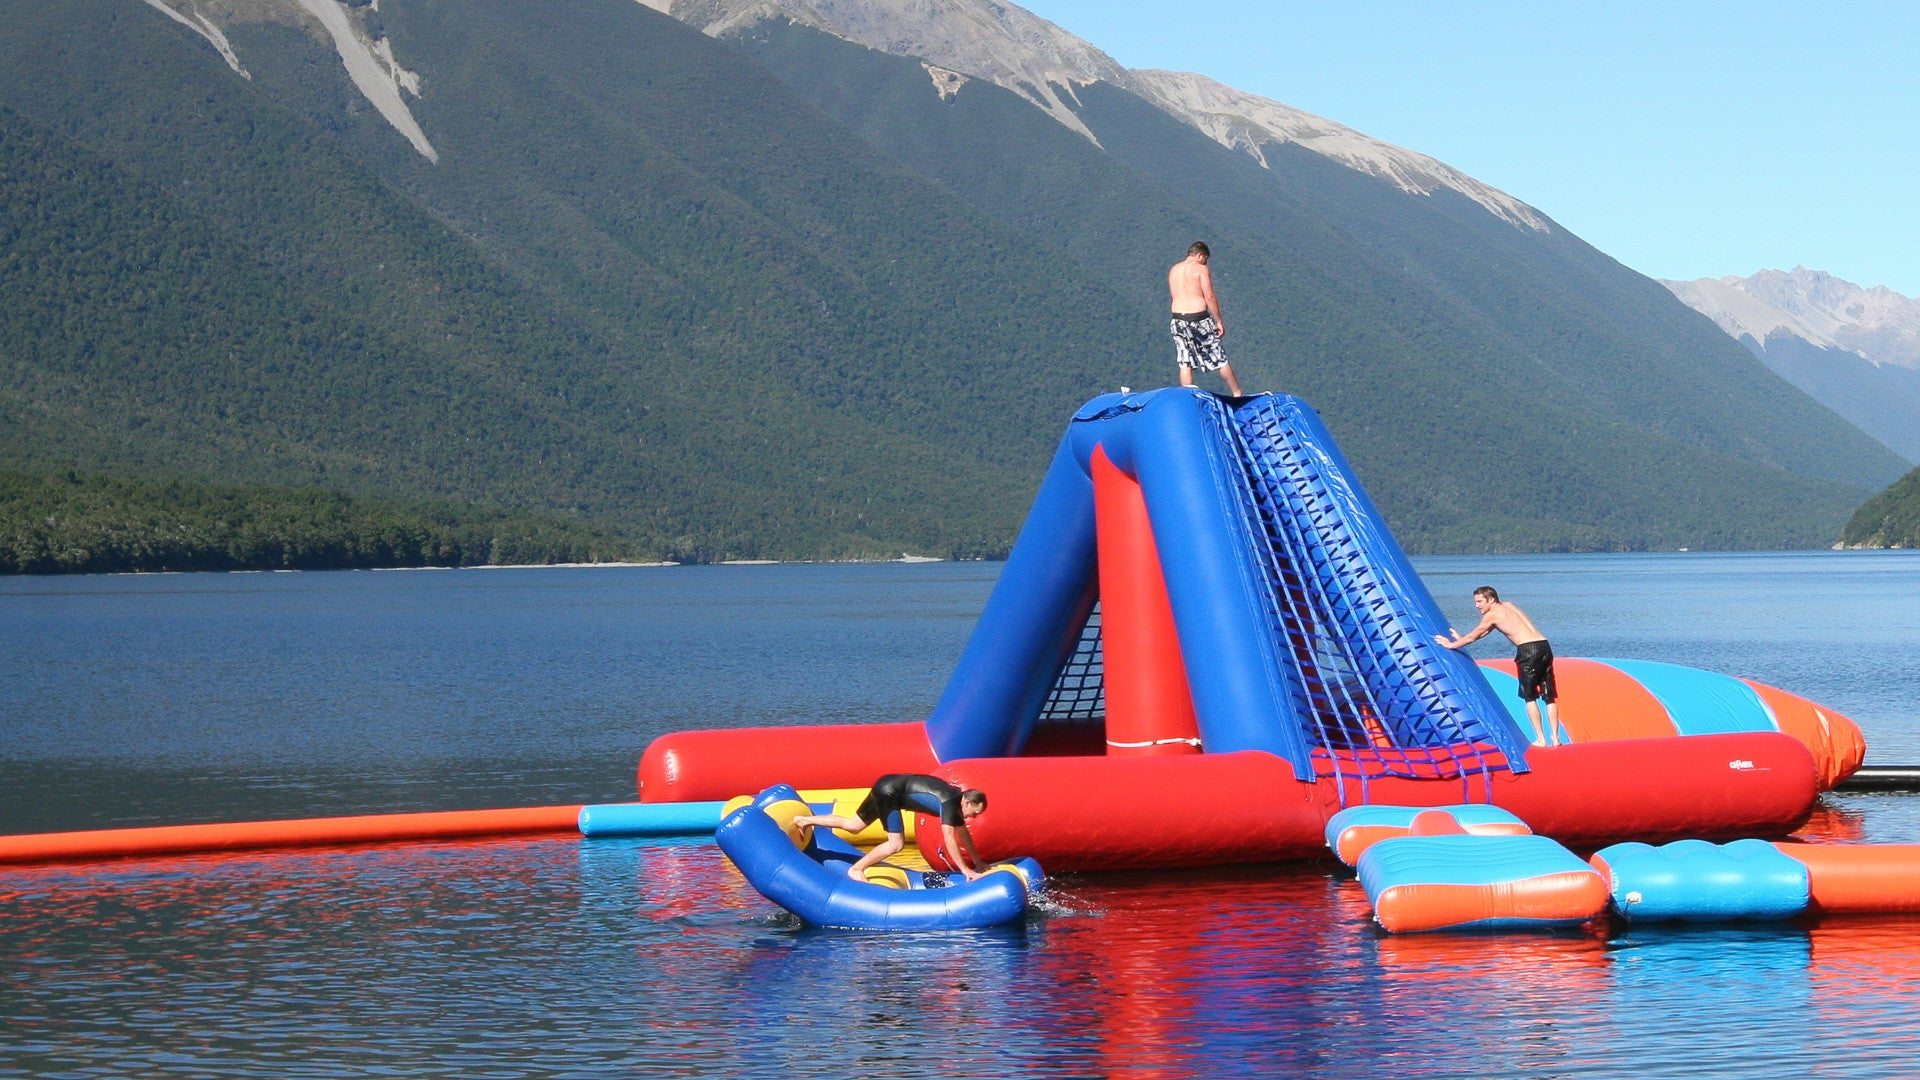 Open Water Inflatable Aqua Park - Drop Zone Tower - Aflex Technology